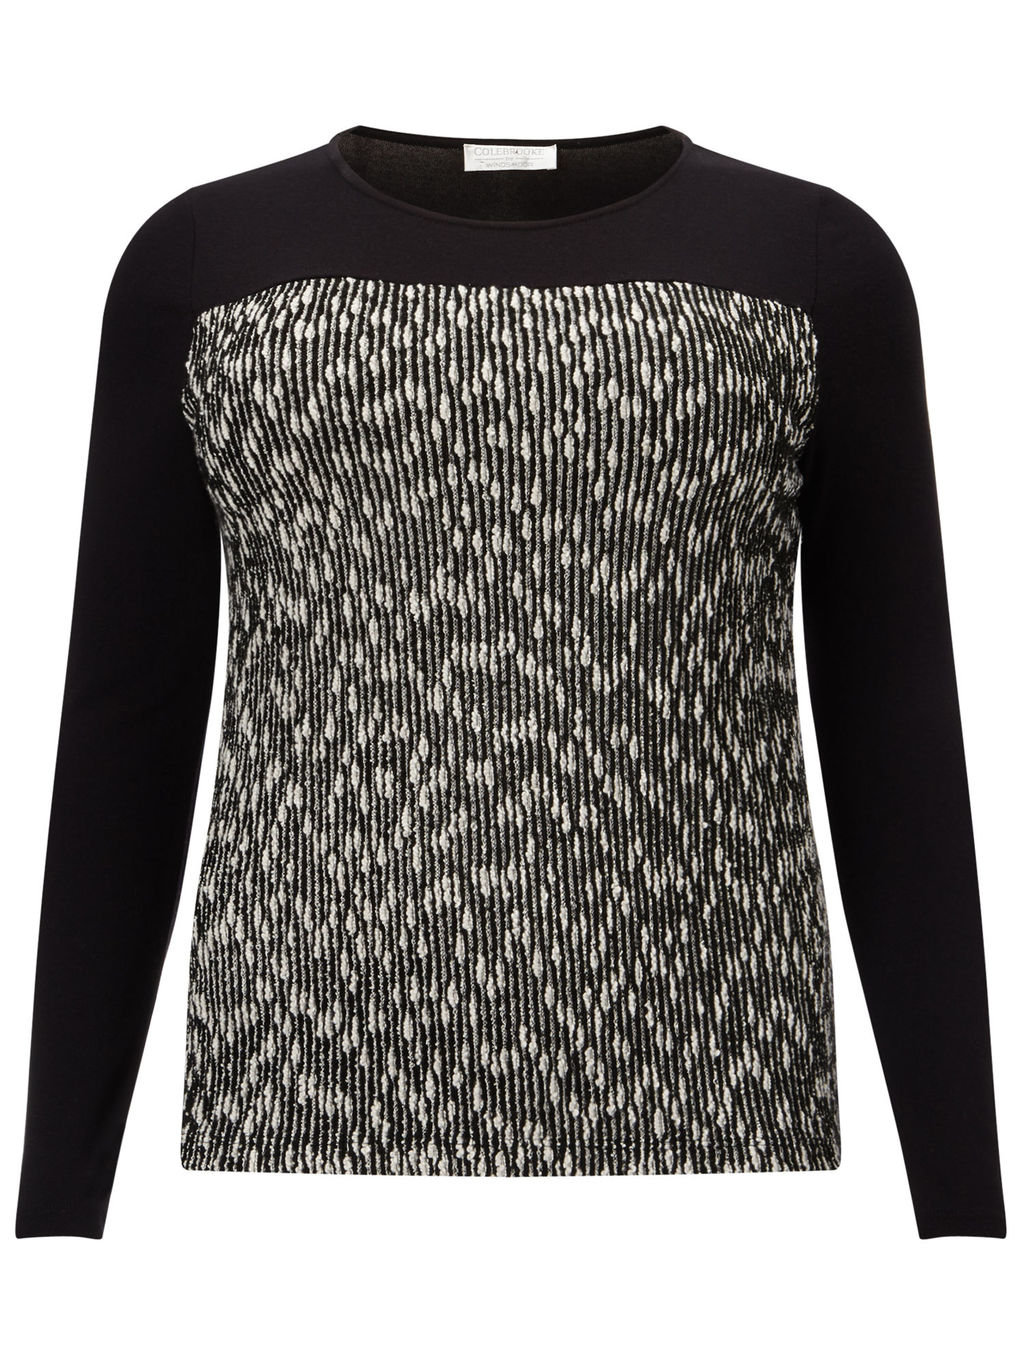 Textured Jumper - style: standard; secondary colour: mid grey; predominant colour: black; occasions: casual; length: standard; fibres: viscose/rayon - 100%; fit: tight; neckline: crew; sleeve length: long sleeve; sleeve style: standard; texture group: knits/crochet; pattern type: knitted - other; pattern size: standard; pattern: marl; multicoloured: multicoloured; season: a/w 2015; wardrobe: basic